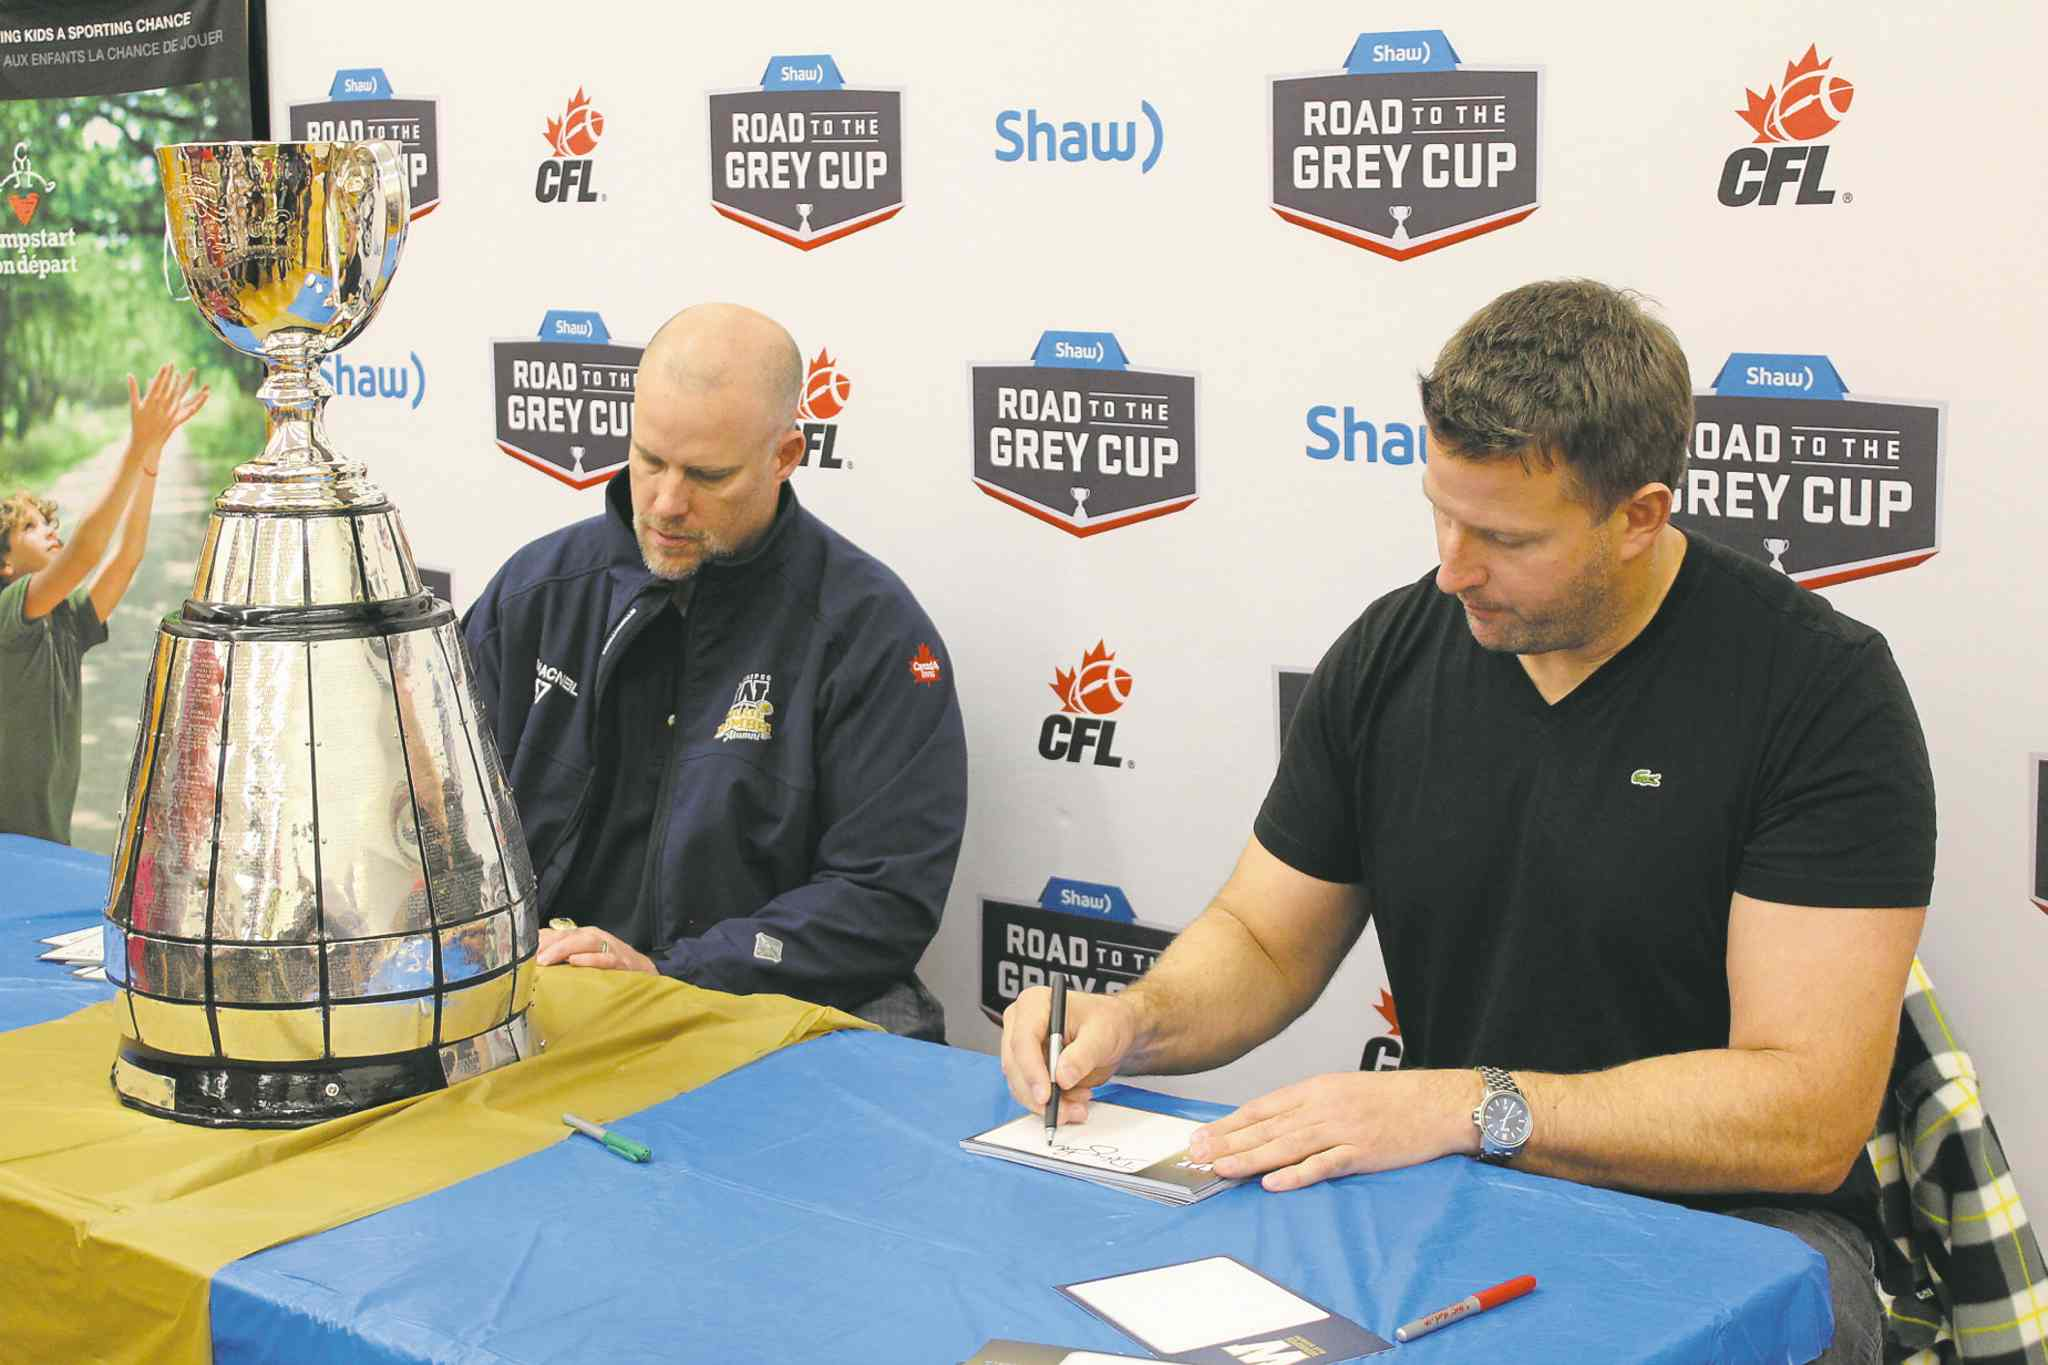 Brett MacNeil (left) and Doug Brown are on tour to promote the 103rd Grey Cup game.